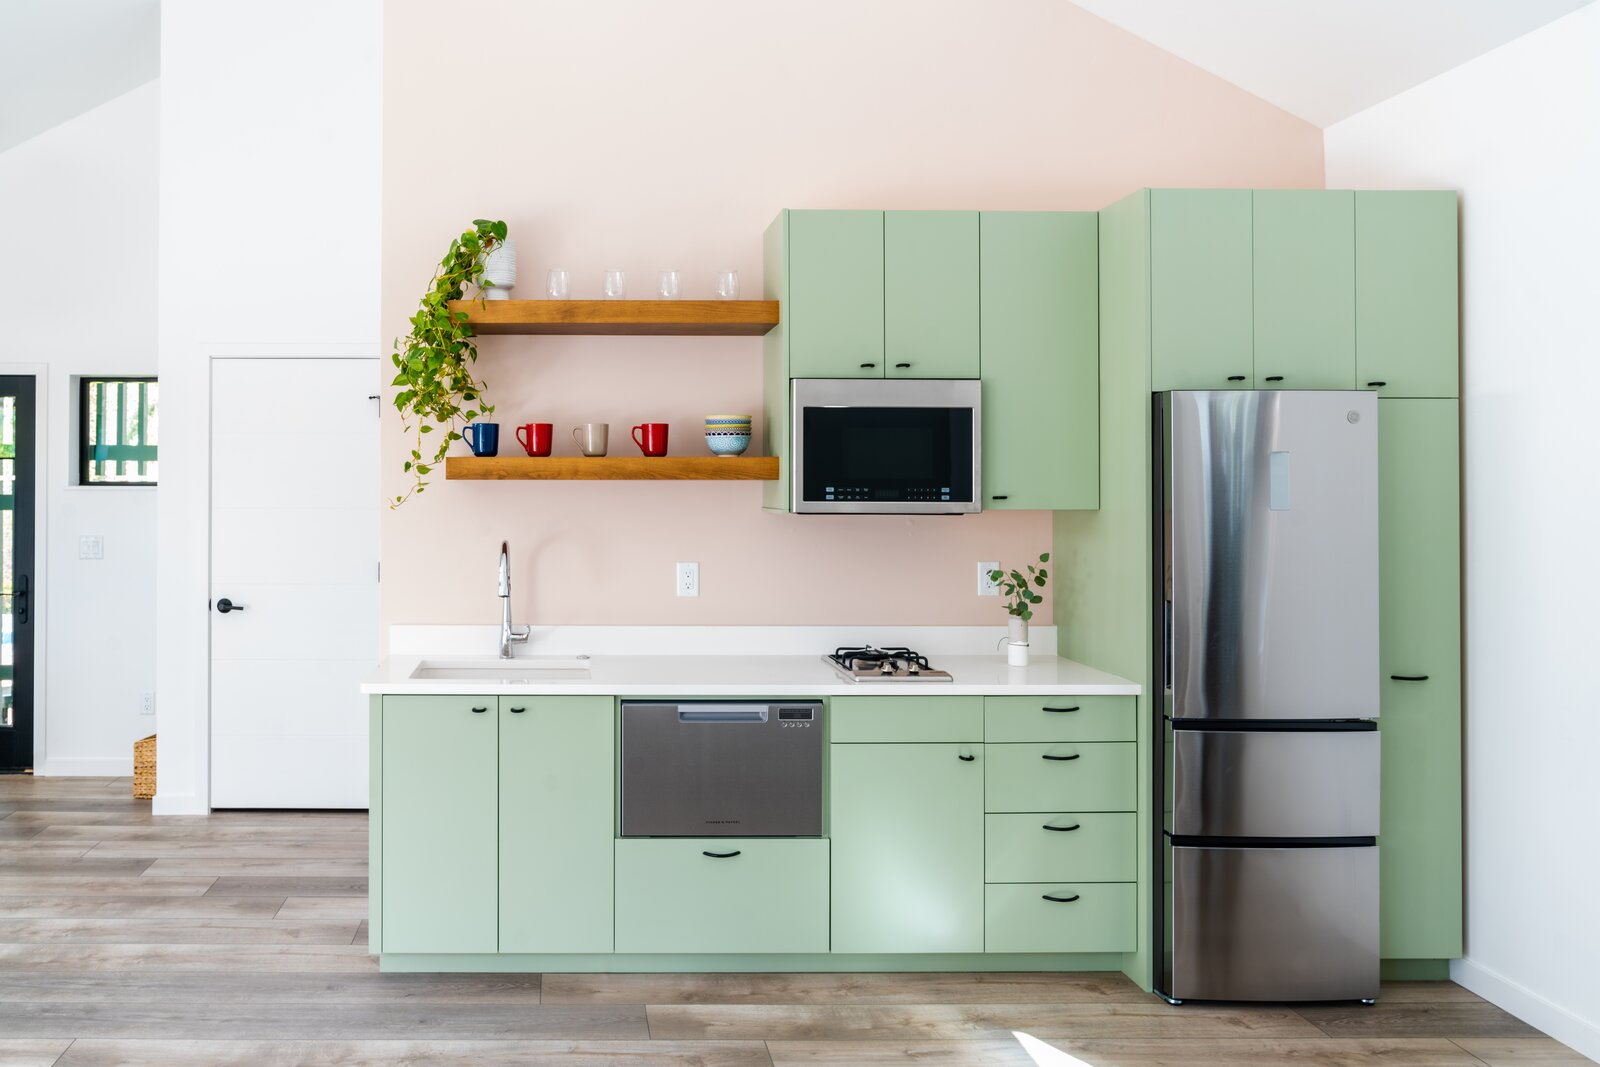 Kitchen of Twin Peaks by Workaday Design